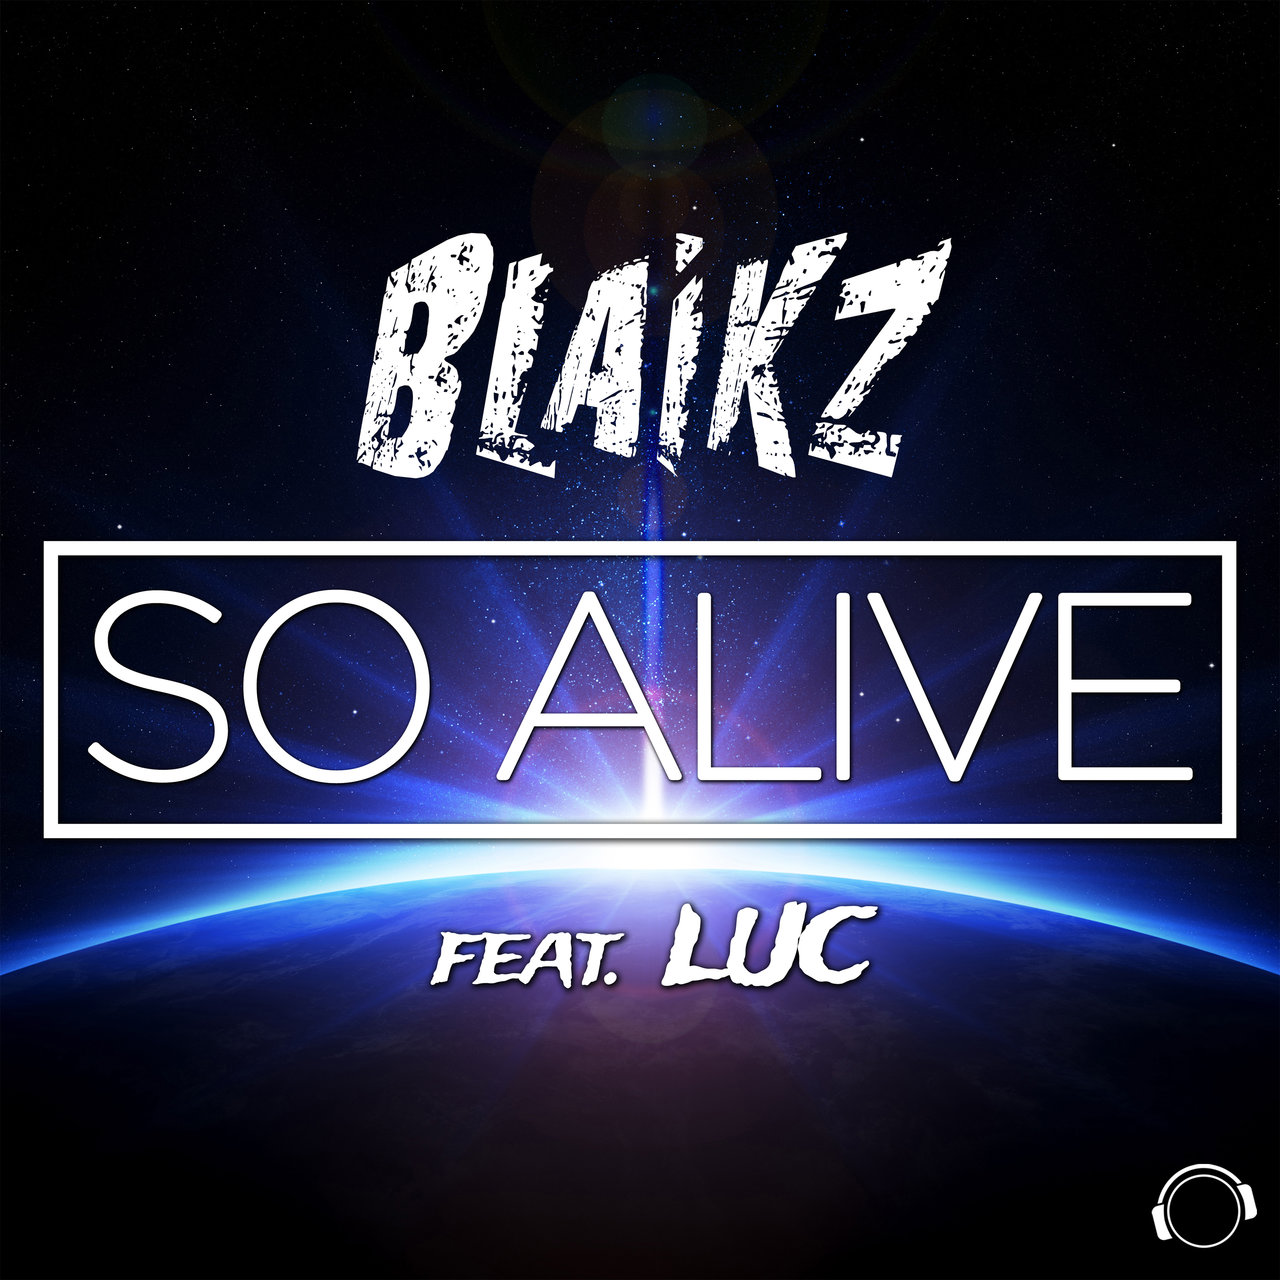 So Alive (feat. Luc)